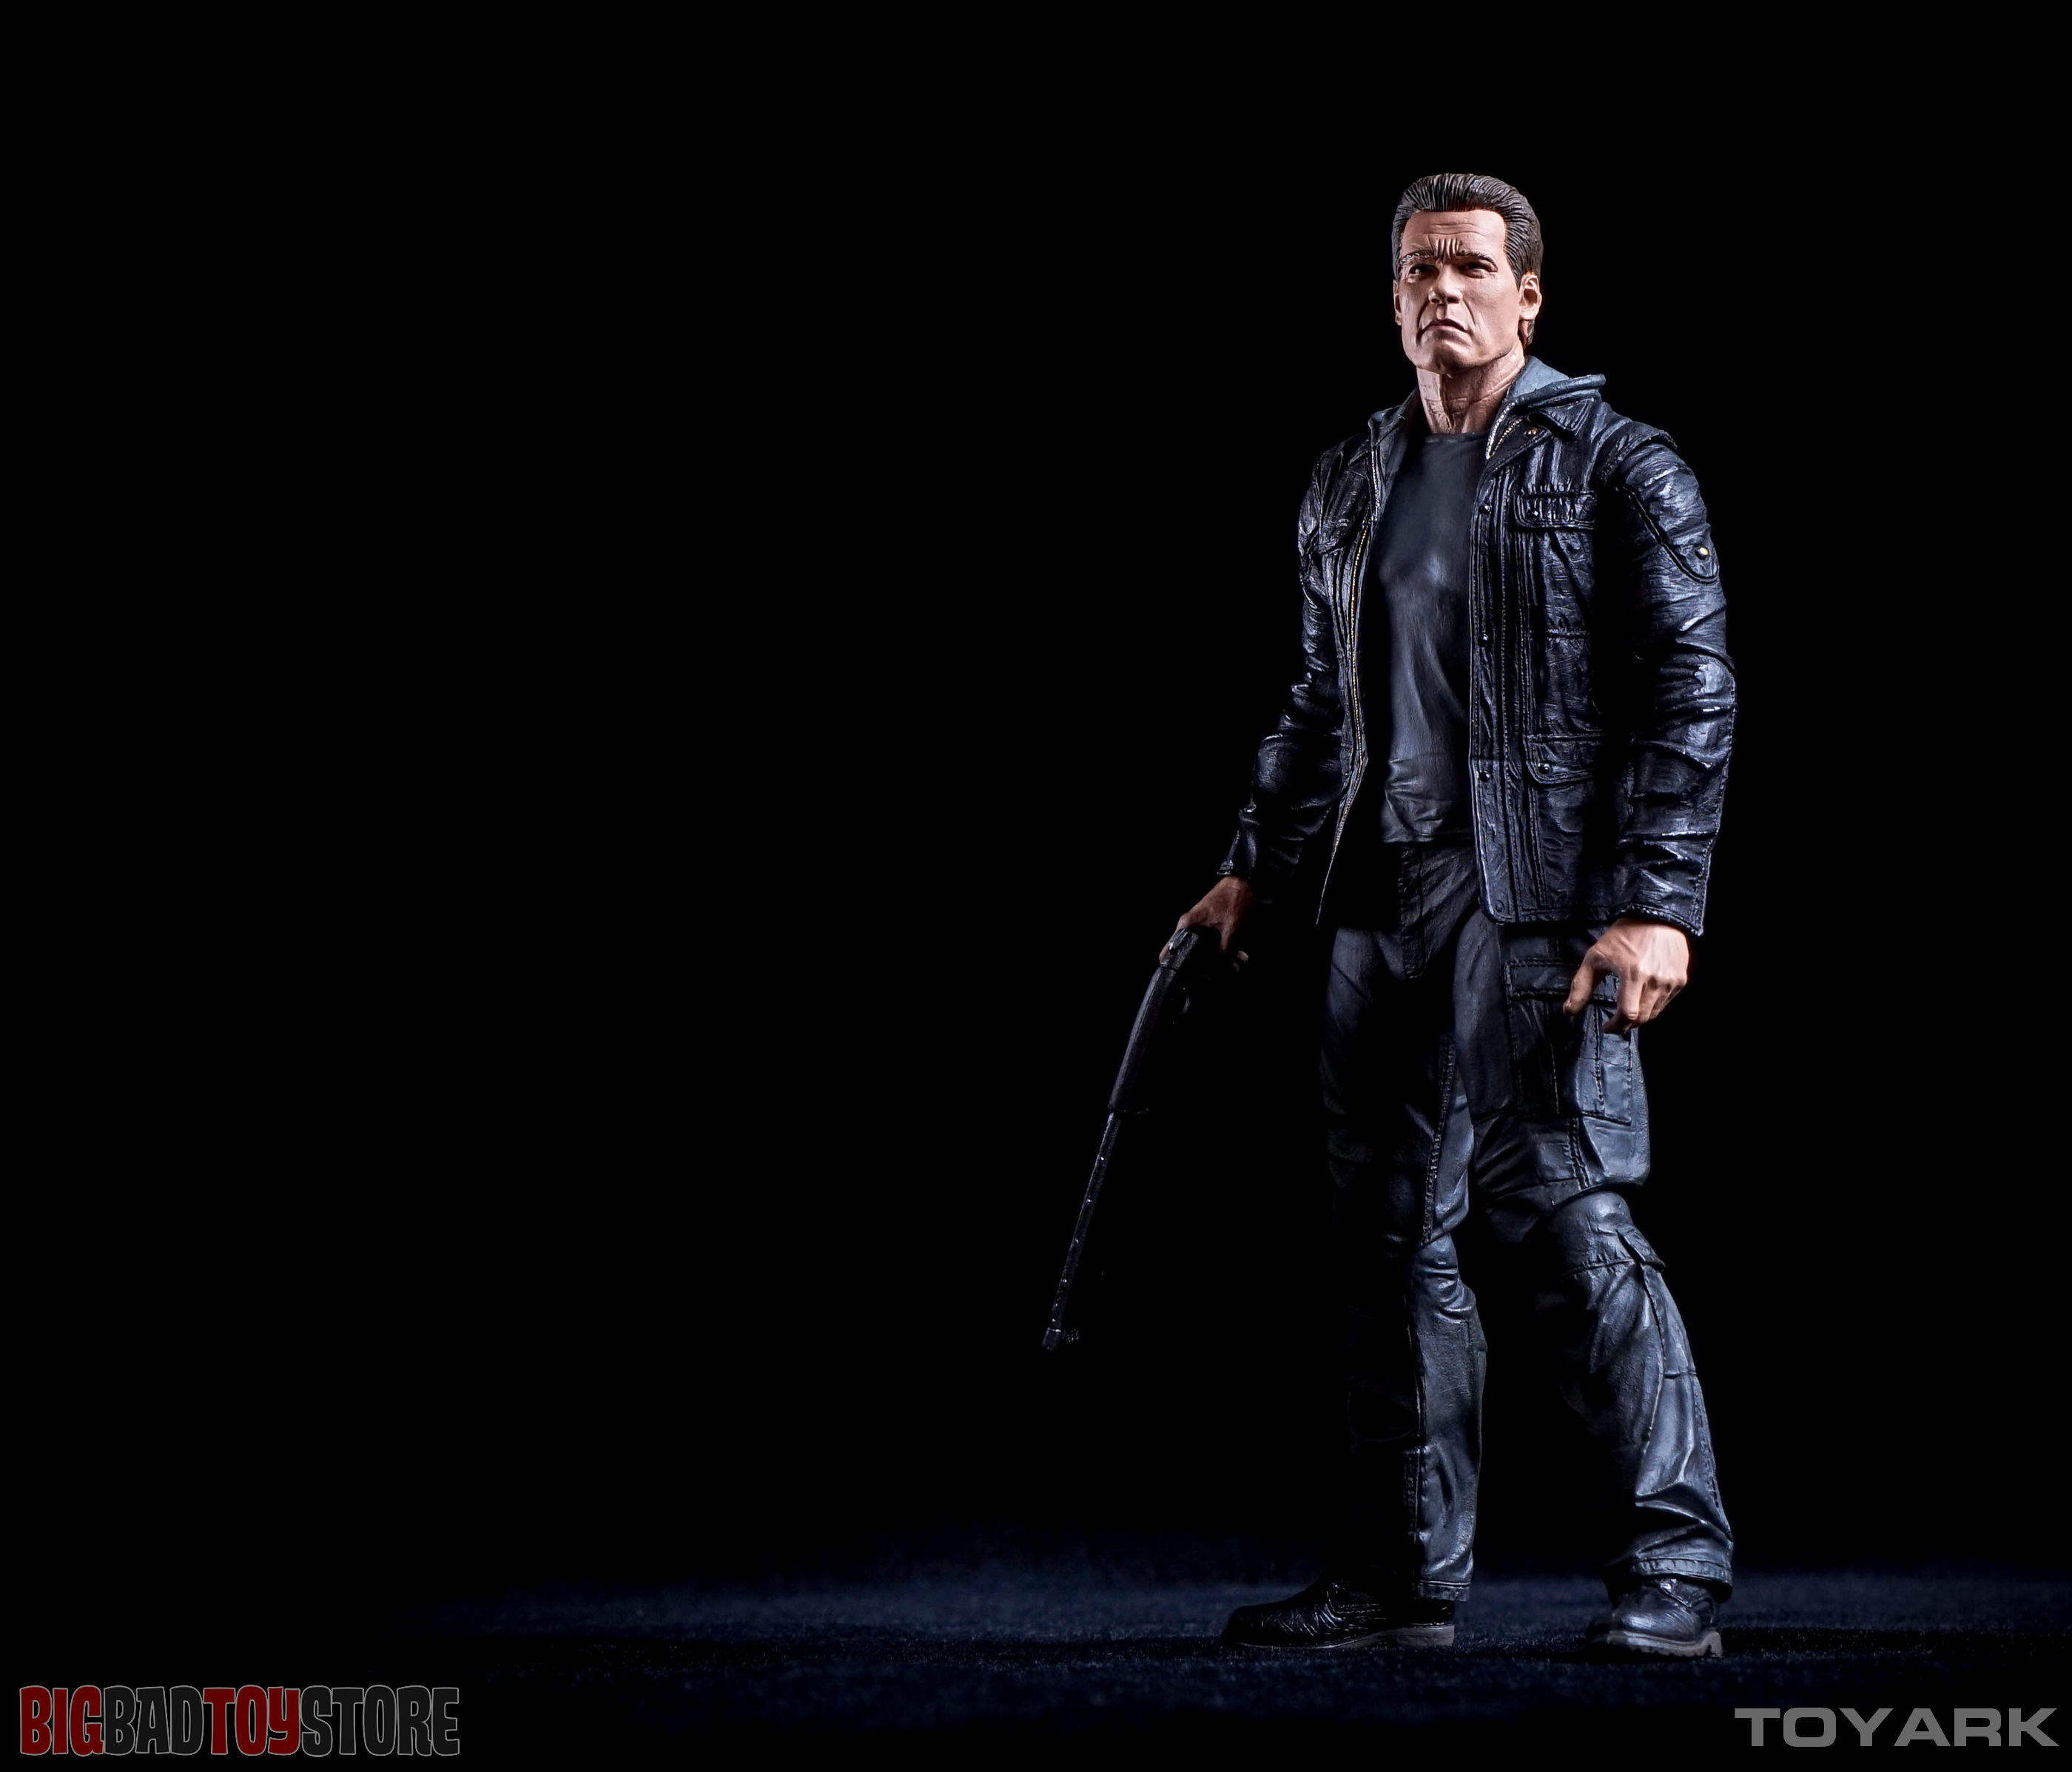 http://news.toyark.com/wp-content/uploads/sites/4/2015/10/NECA-Guardian-T800-Terminator-Genisys-030.jpg